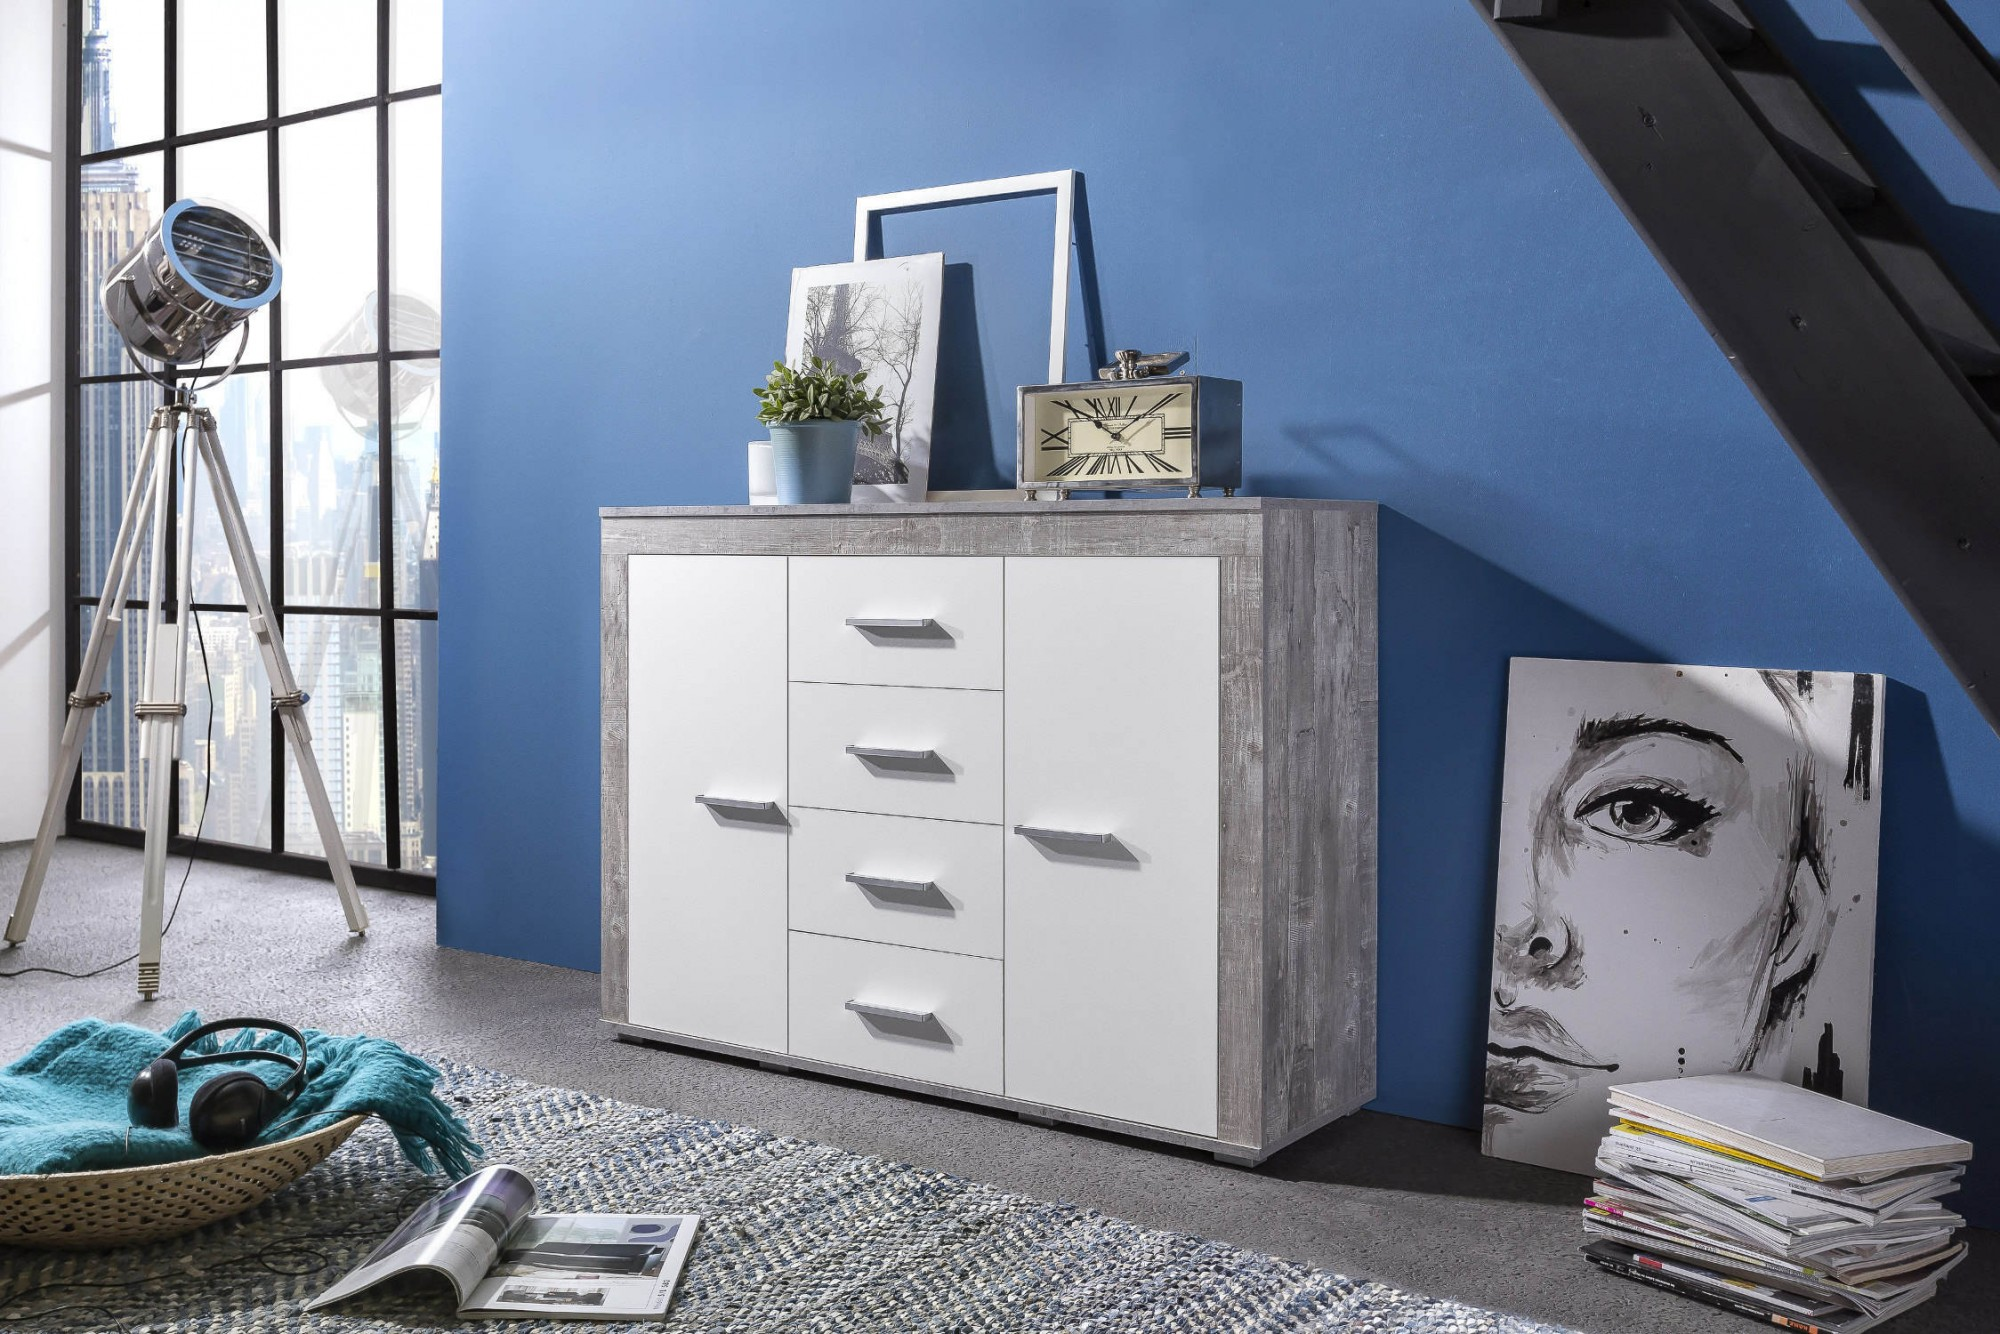 sideboard aosta 120 cm breit 2 t ren 4 schubladen wei beton grau wohnen sideboards. Black Bedroom Furniture Sets. Home Design Ideas